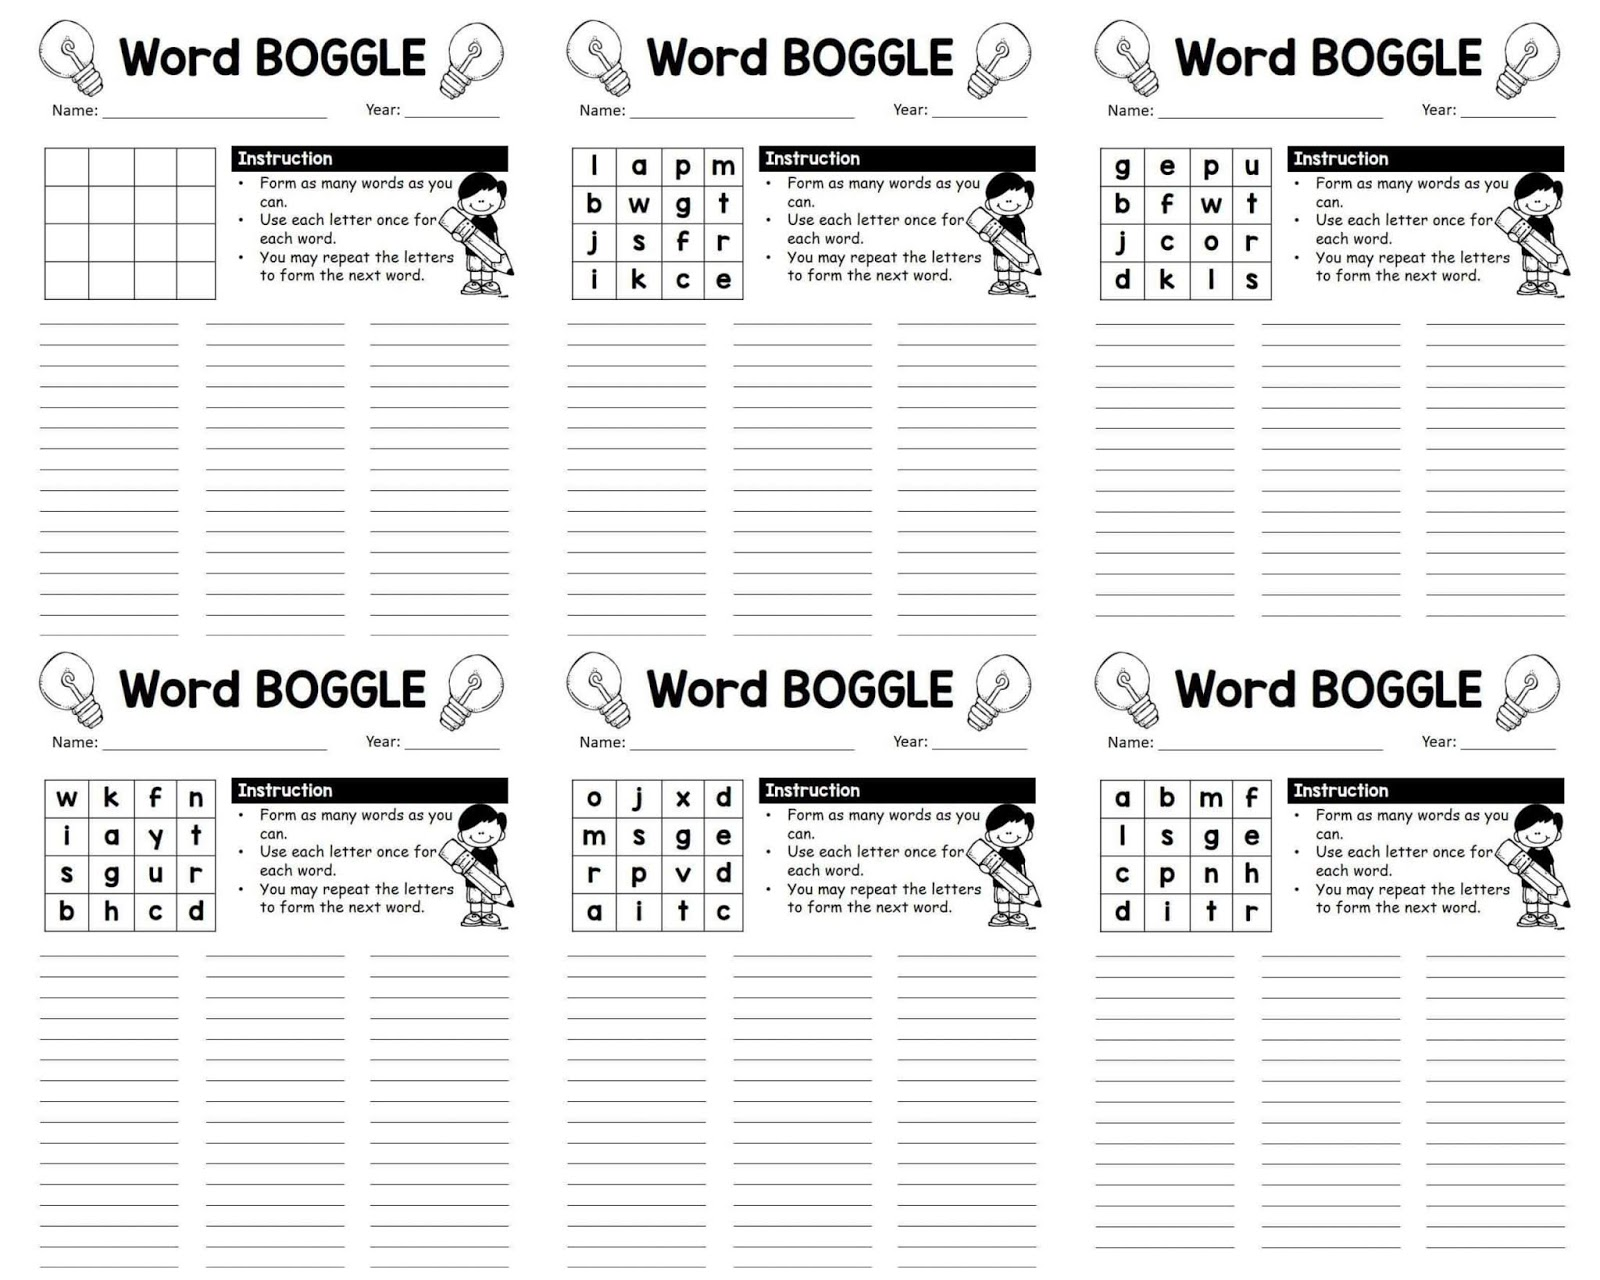 Download Word Boggle Worksheets